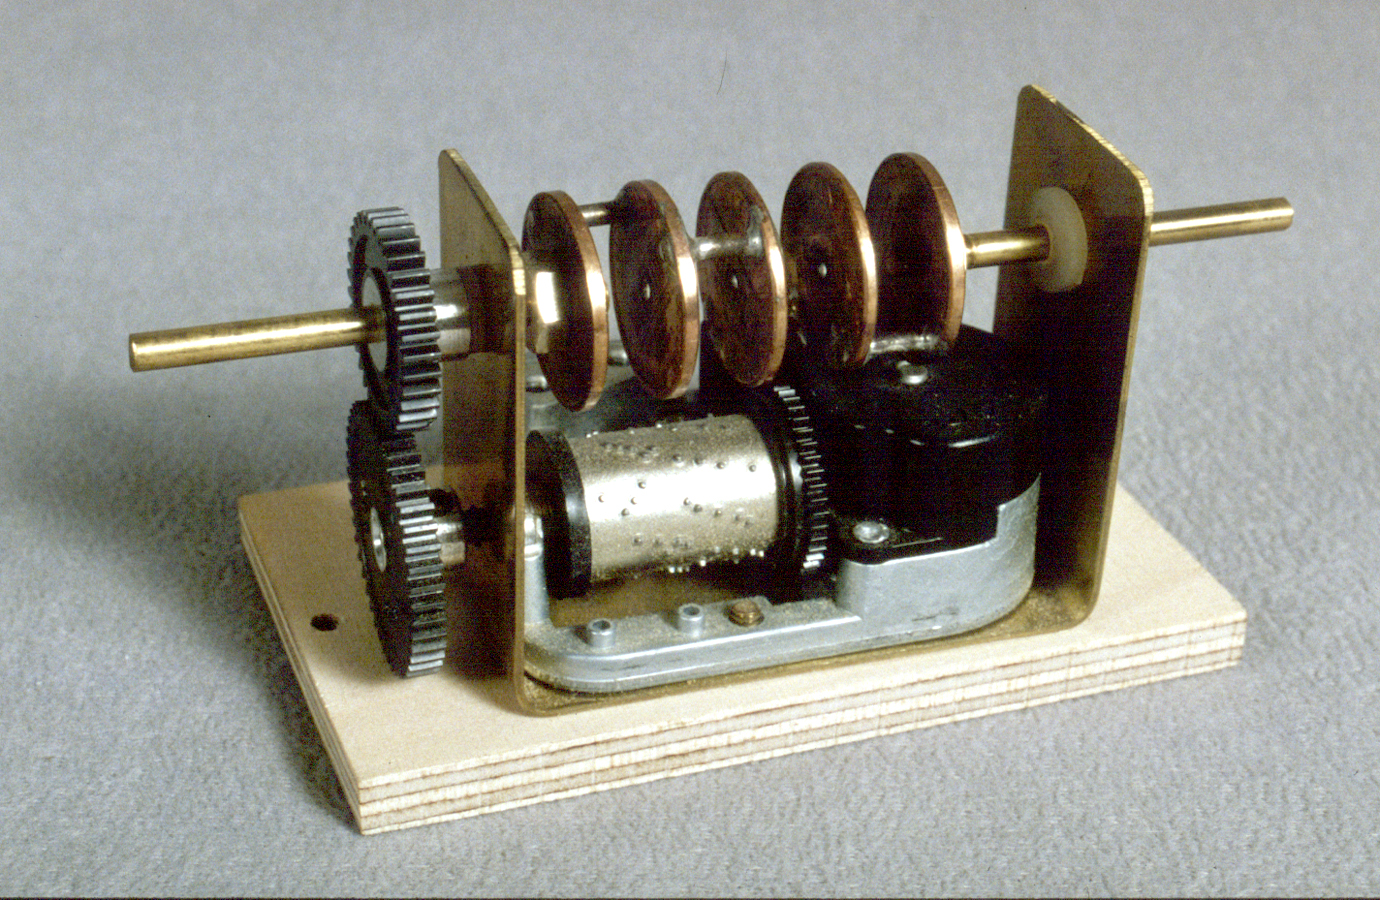 The controller prototype design is a stacked crankshaft made from pennies that has been silver soldered together and linked to a Sanyo music box movement with nylon gears used for slot cars.